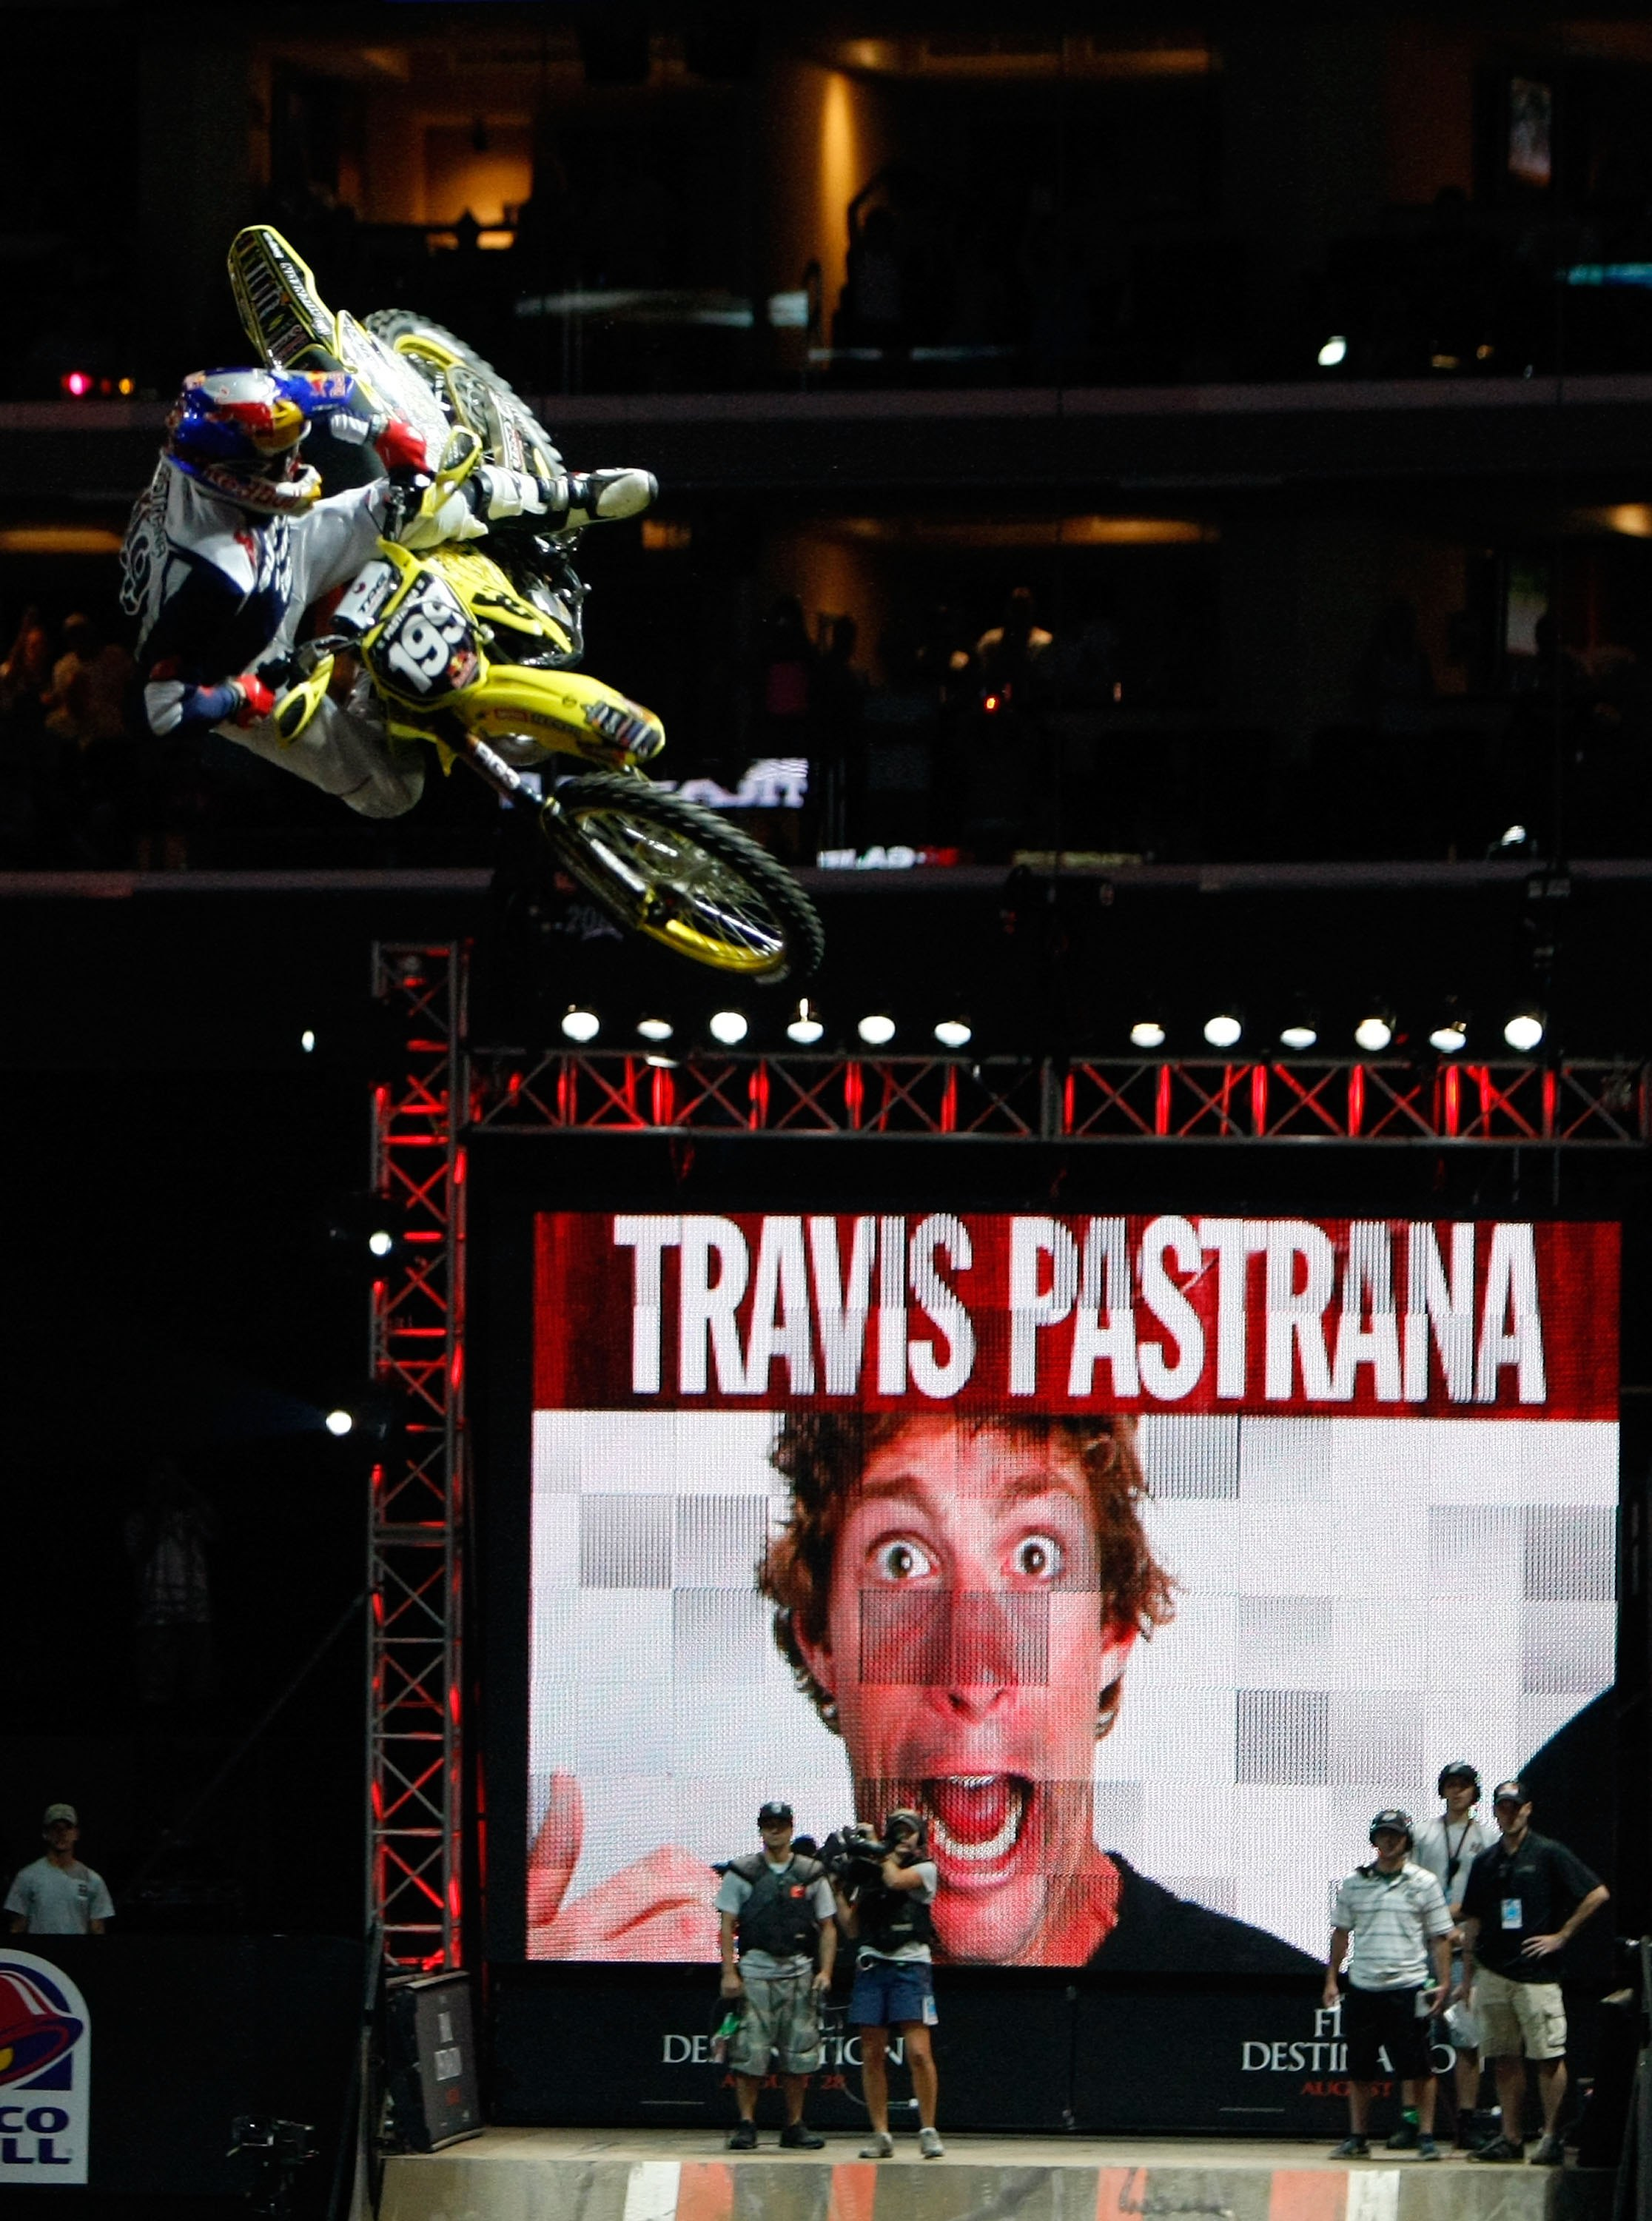 LOS ANGELES, CA - JULY 31:  Travis Pastrana competes before crashing in the Moto X Best Trick Final during X Games 15 at Staples Center on July 31, 2009 in Los Angeles, California.  (Photo by Jeff Gross/Getty Images)